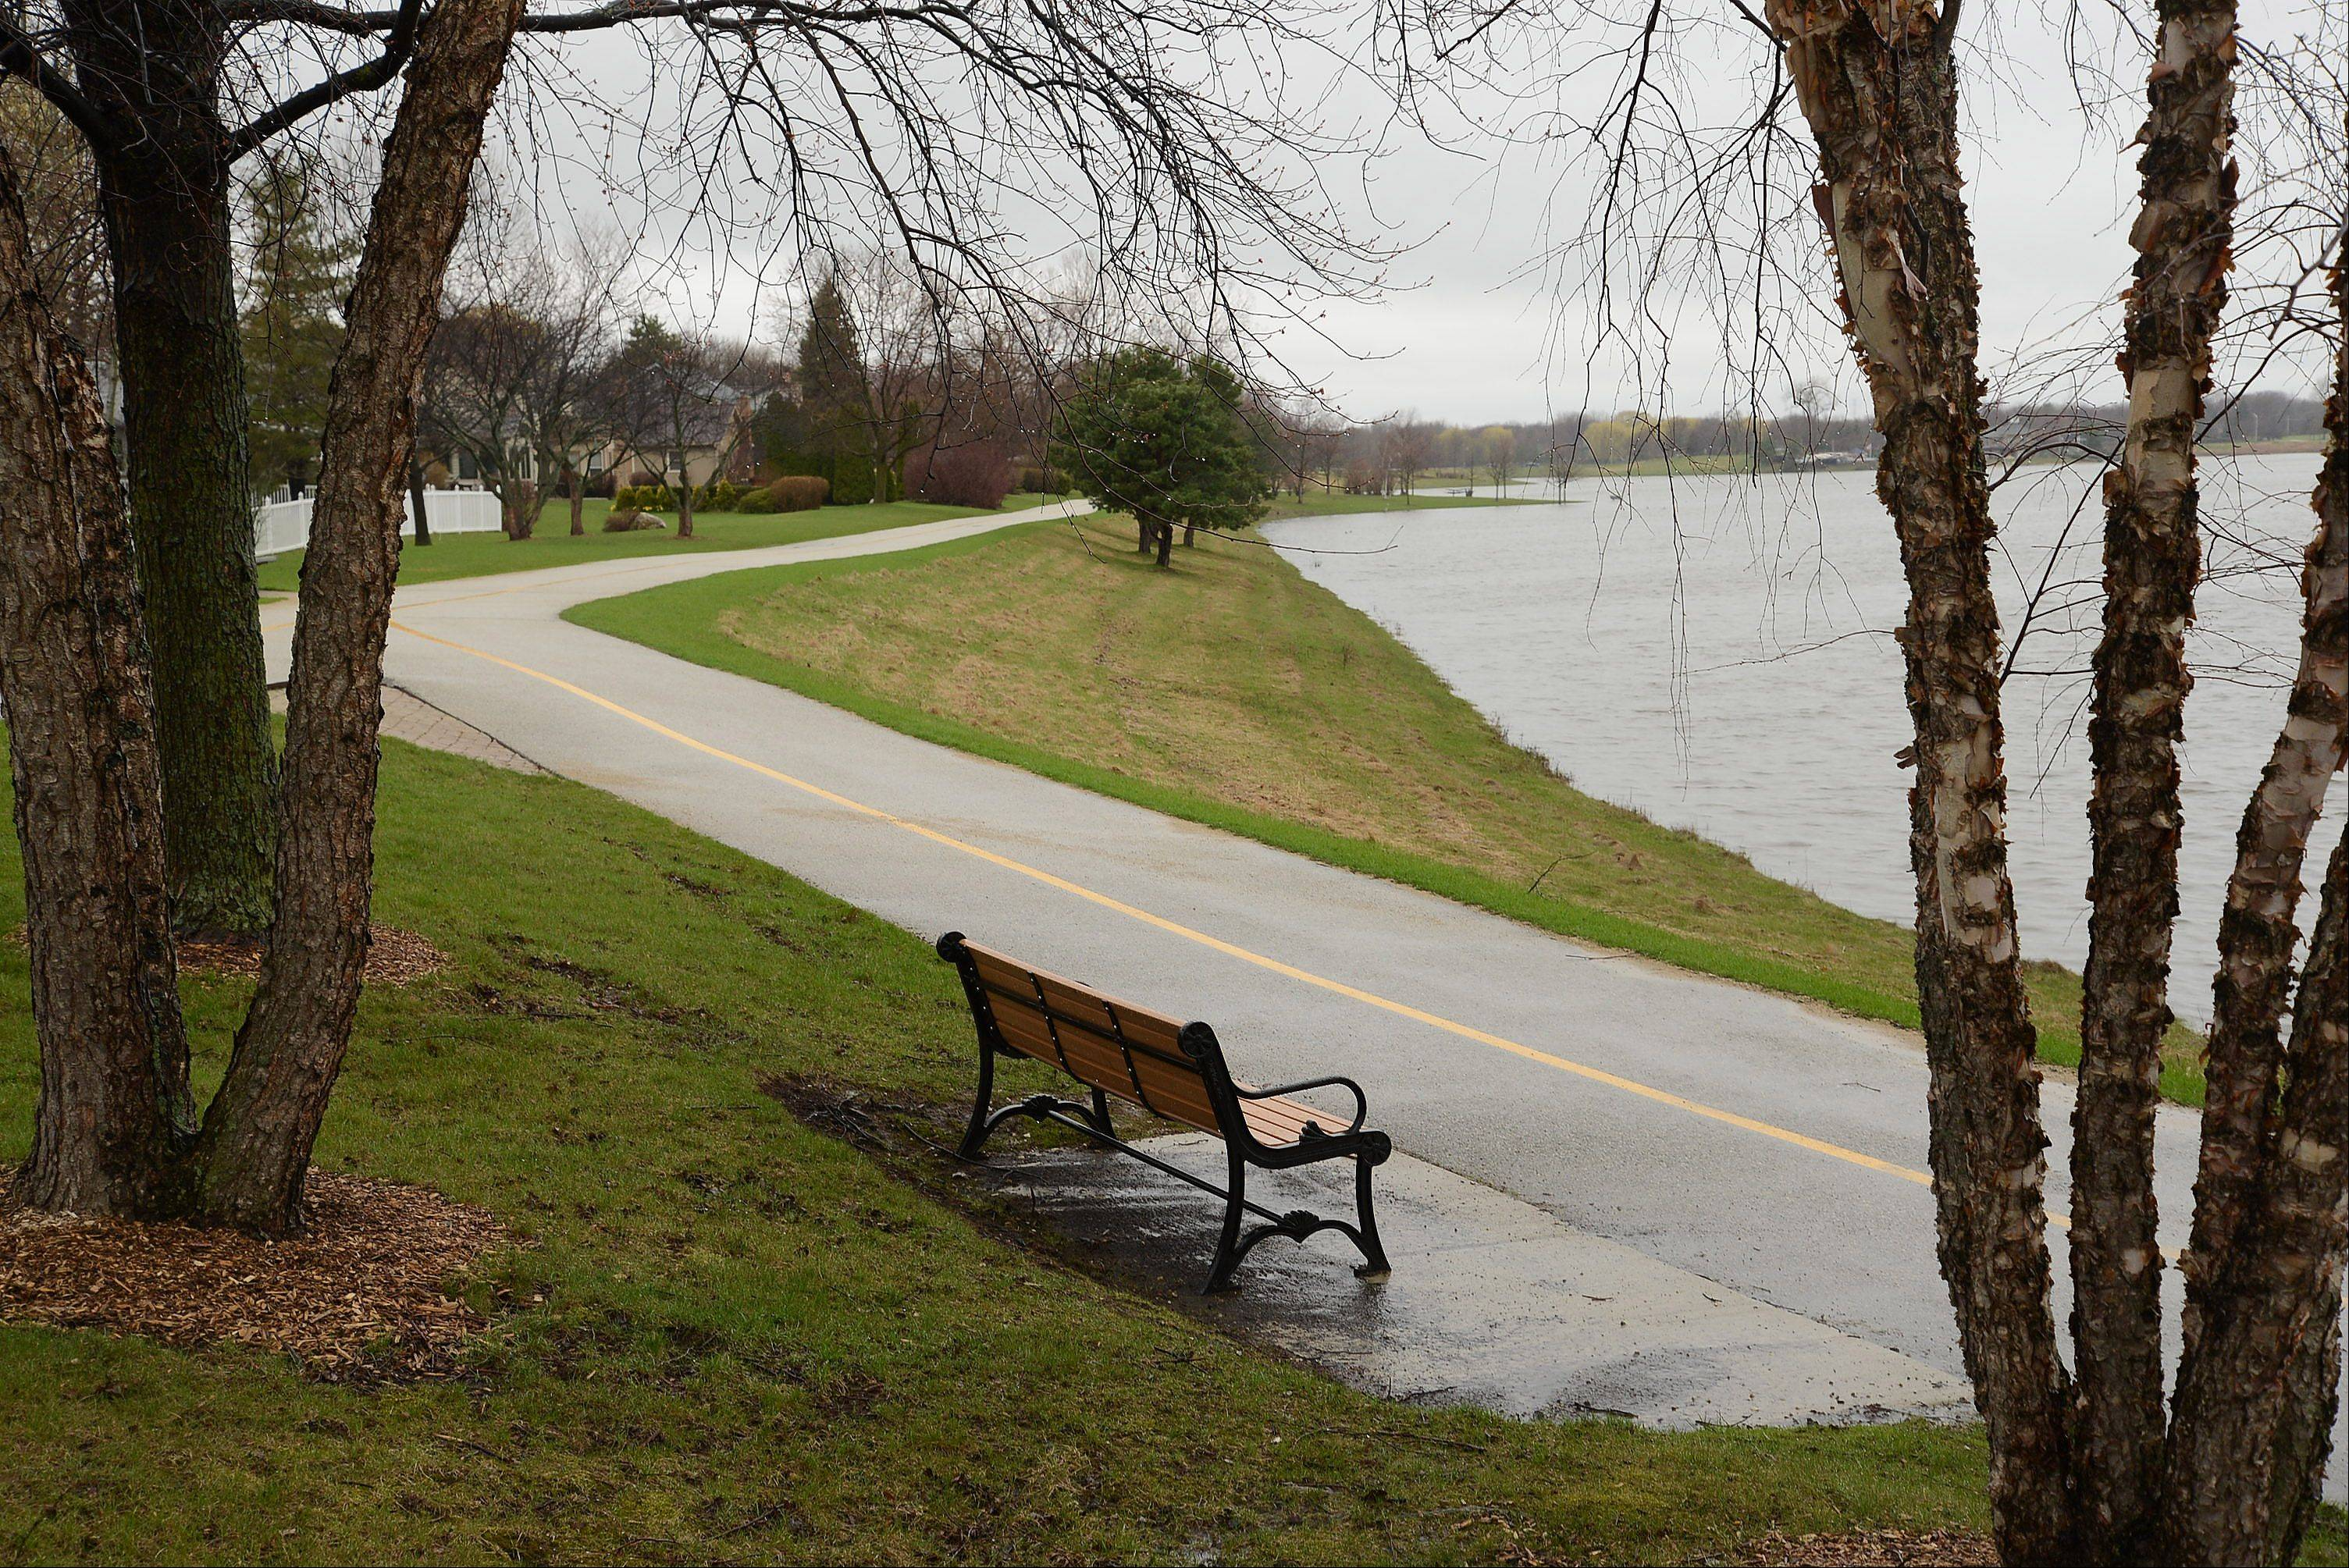 The Arlington Heights Park District announced this weekend that it will make a few interim changes at Lake Arlington in light of the recent death of a pedestrian who was struck by a bicyclist last month.